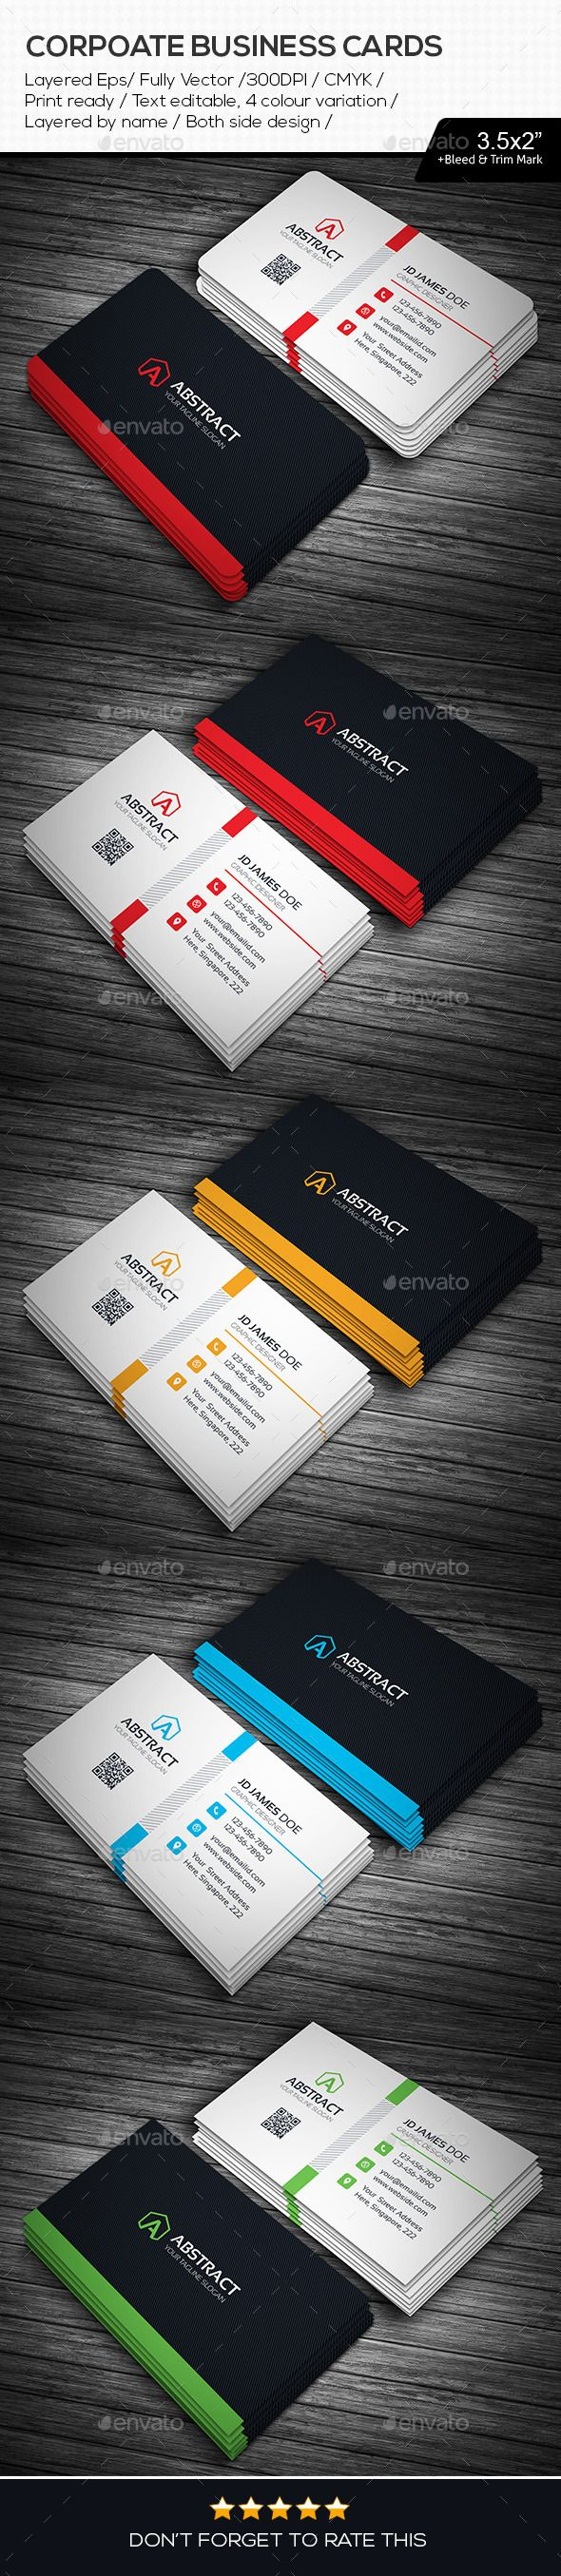 32 best vistaprint business cards images on pinterest vistaprint abstract corporate business cards reheart Images